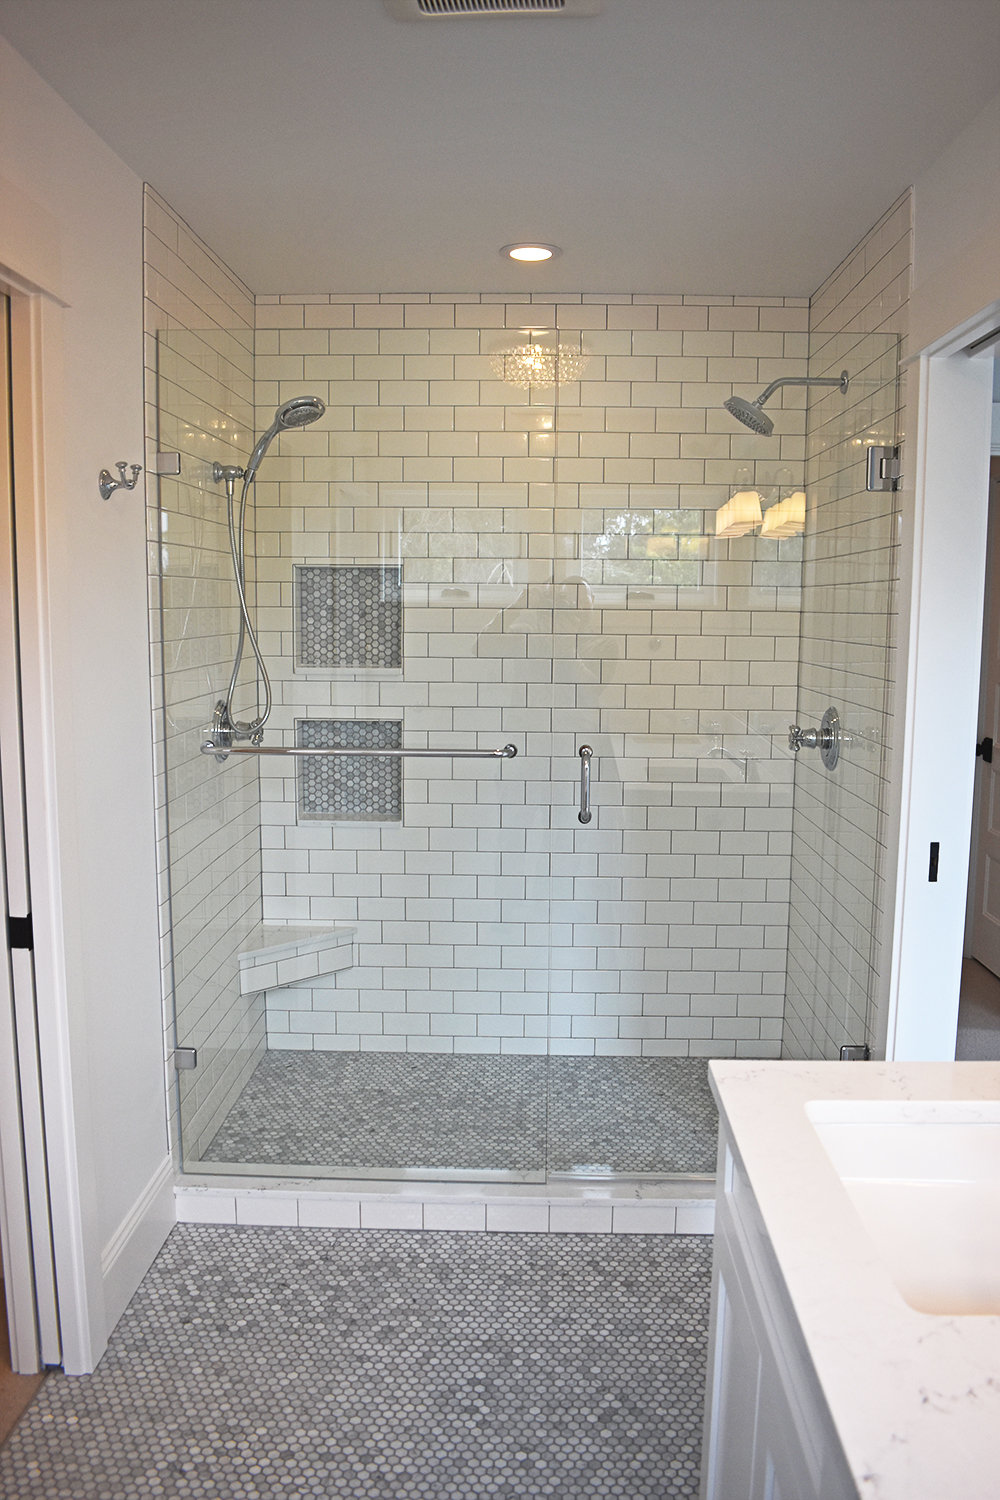 Bathroom Remodel - Dual Shower Head